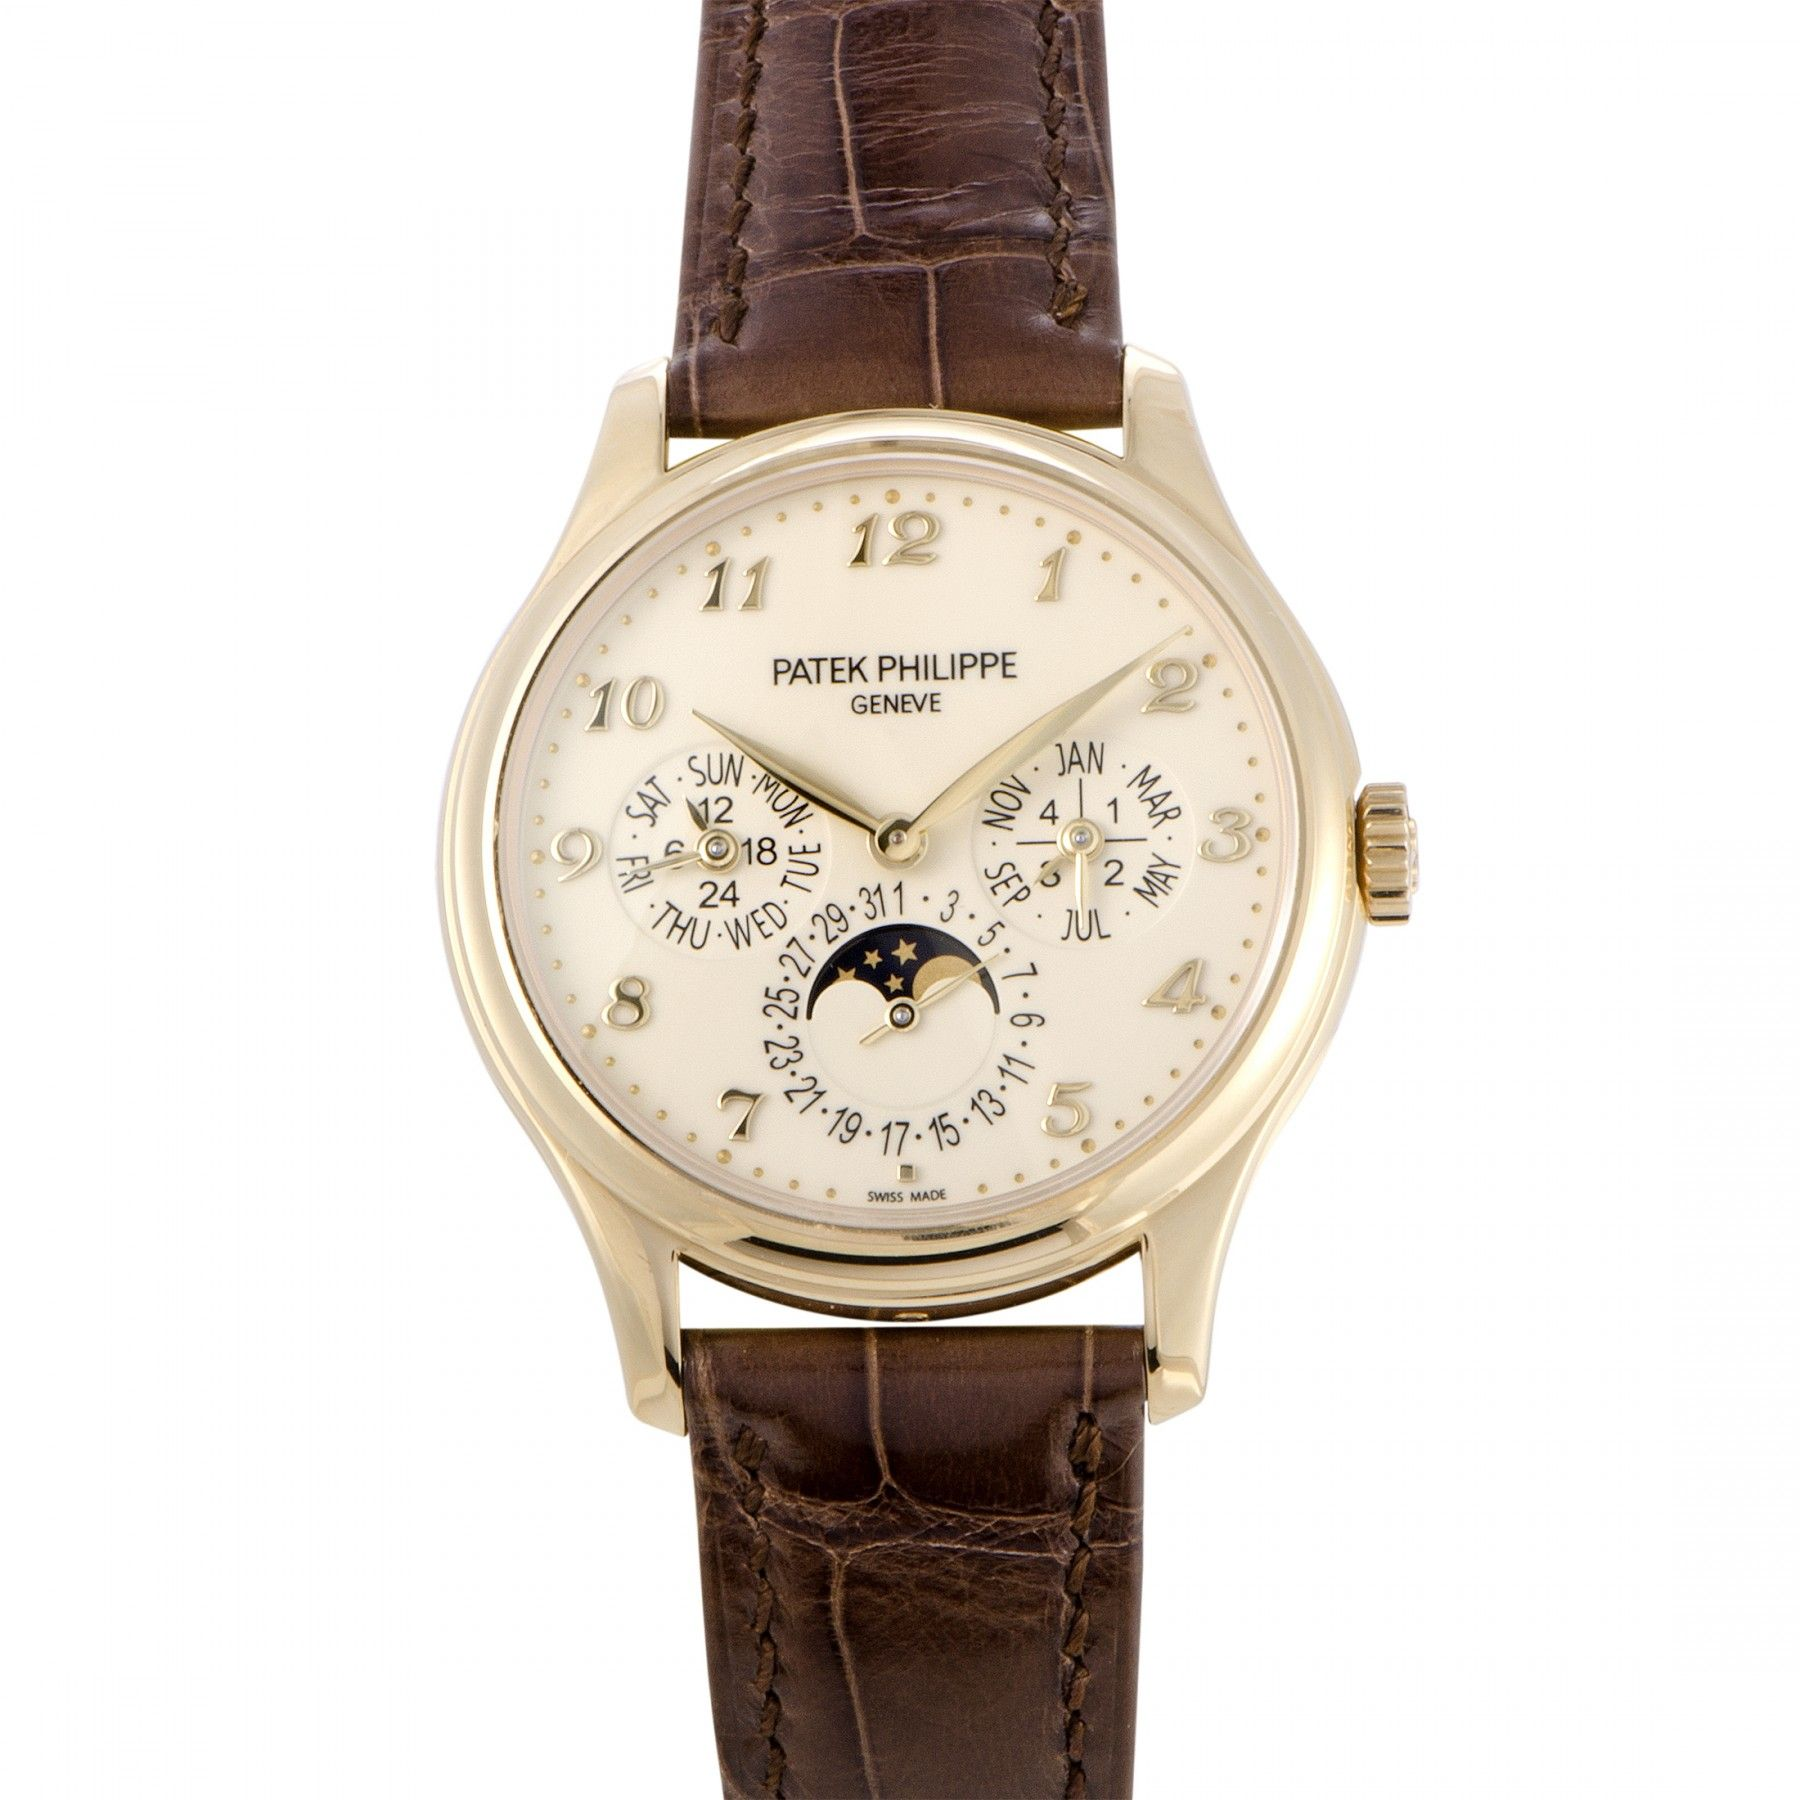 grand pre watches owned patek complications calendar perpetual philippe